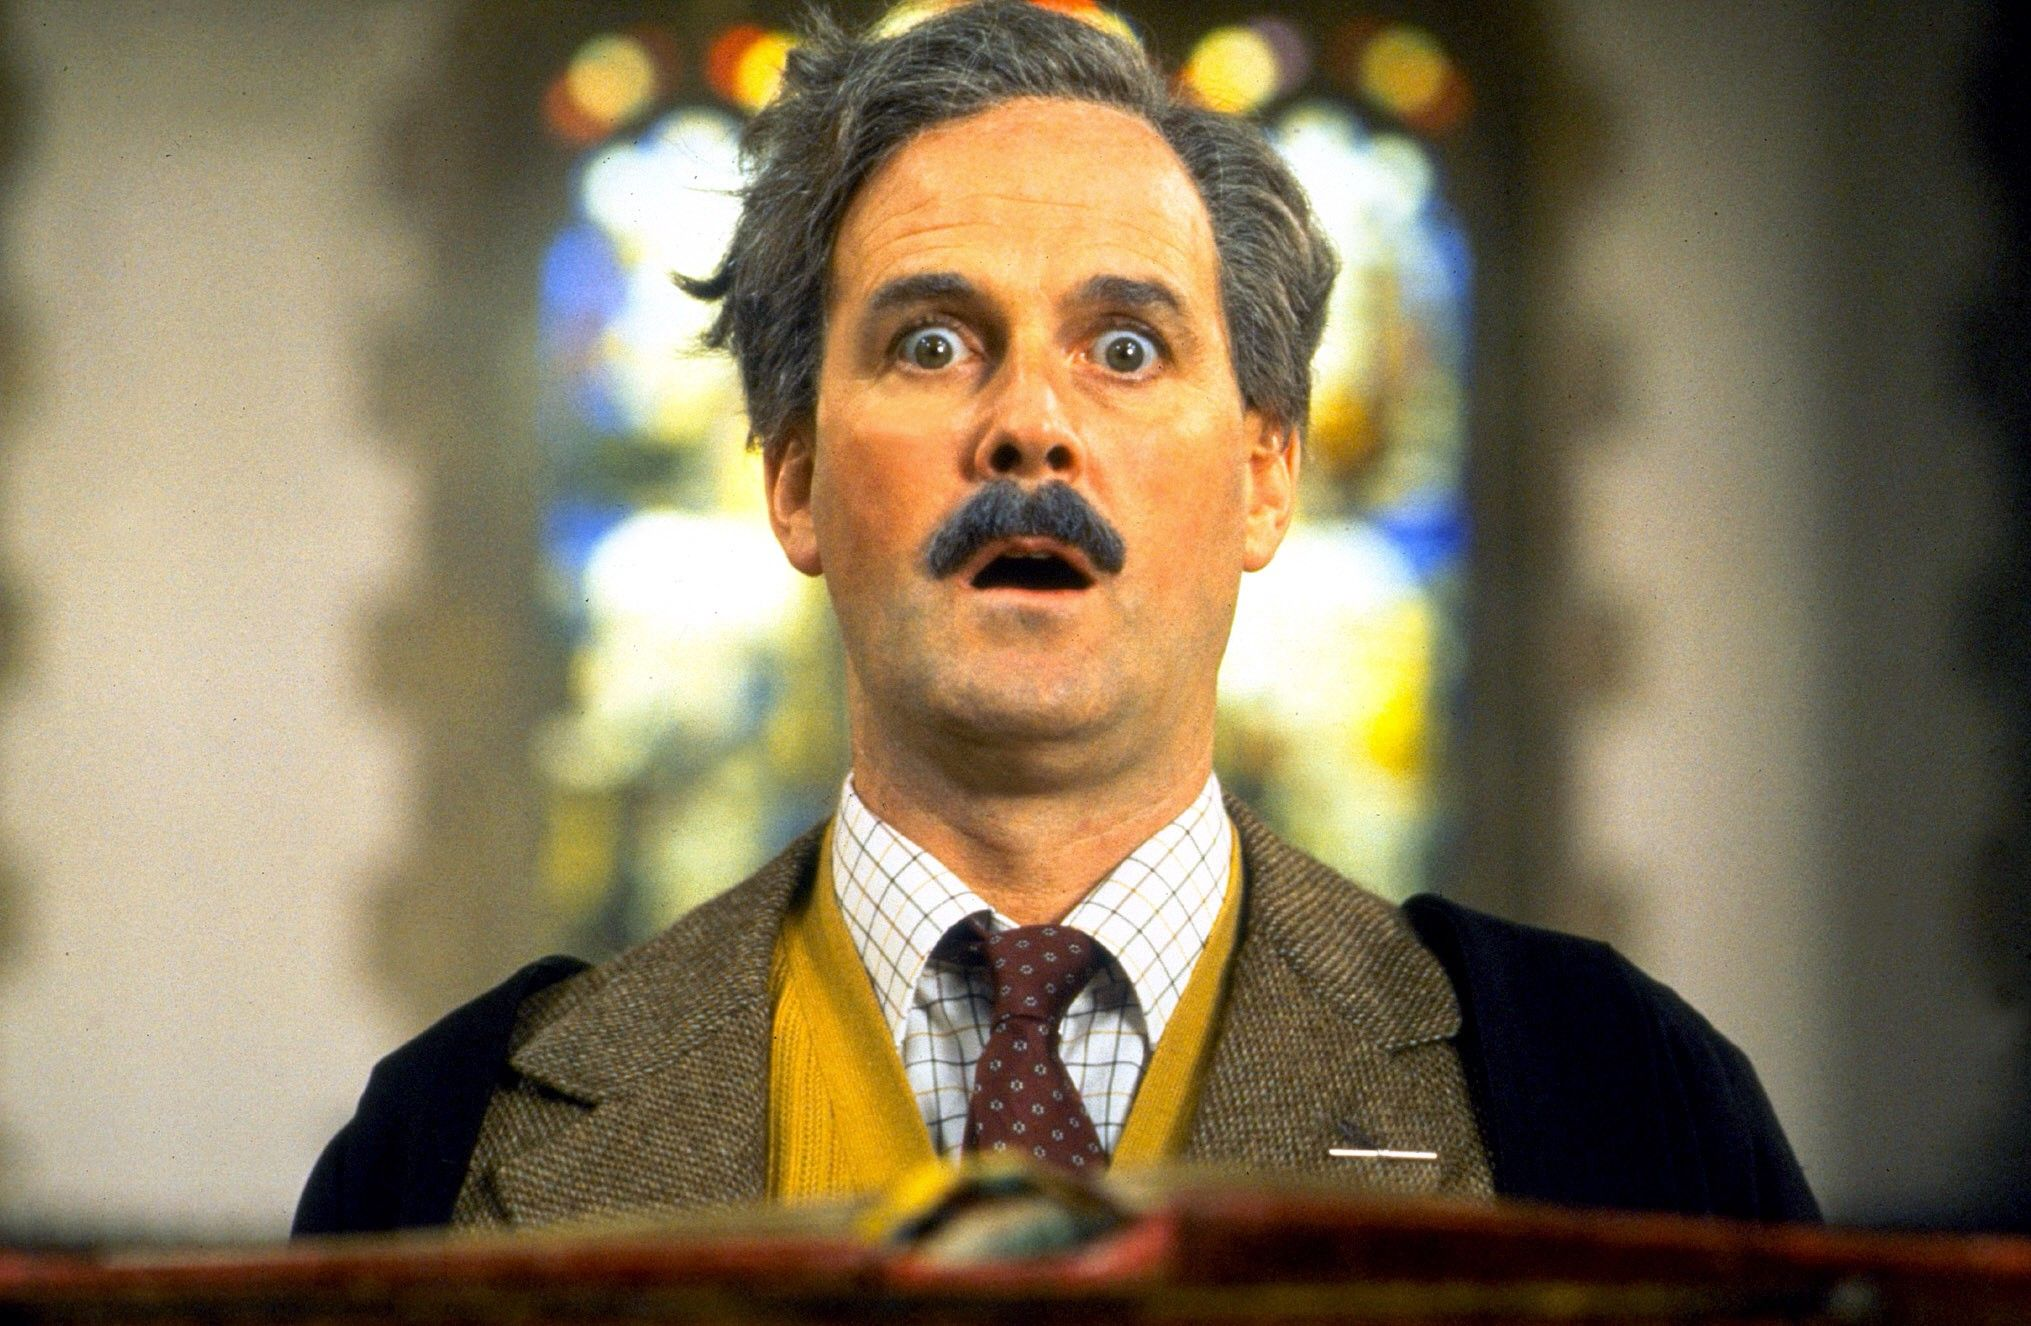 john cleese facts